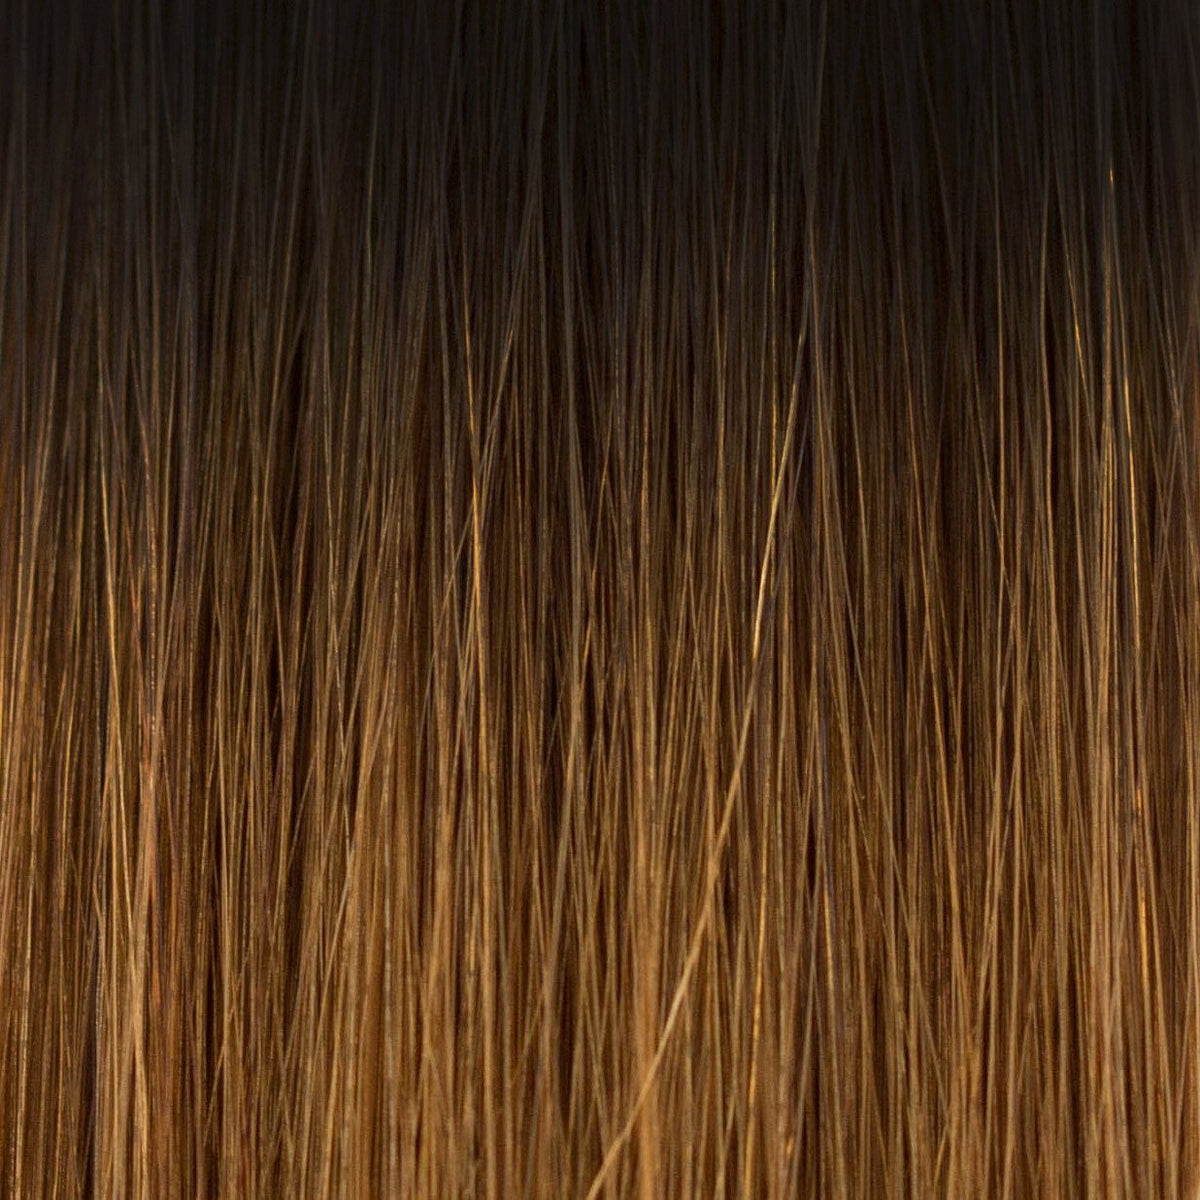 Laced Hair Keratin Bond Extensions Ombré #1B/5 (Caramel Latte)